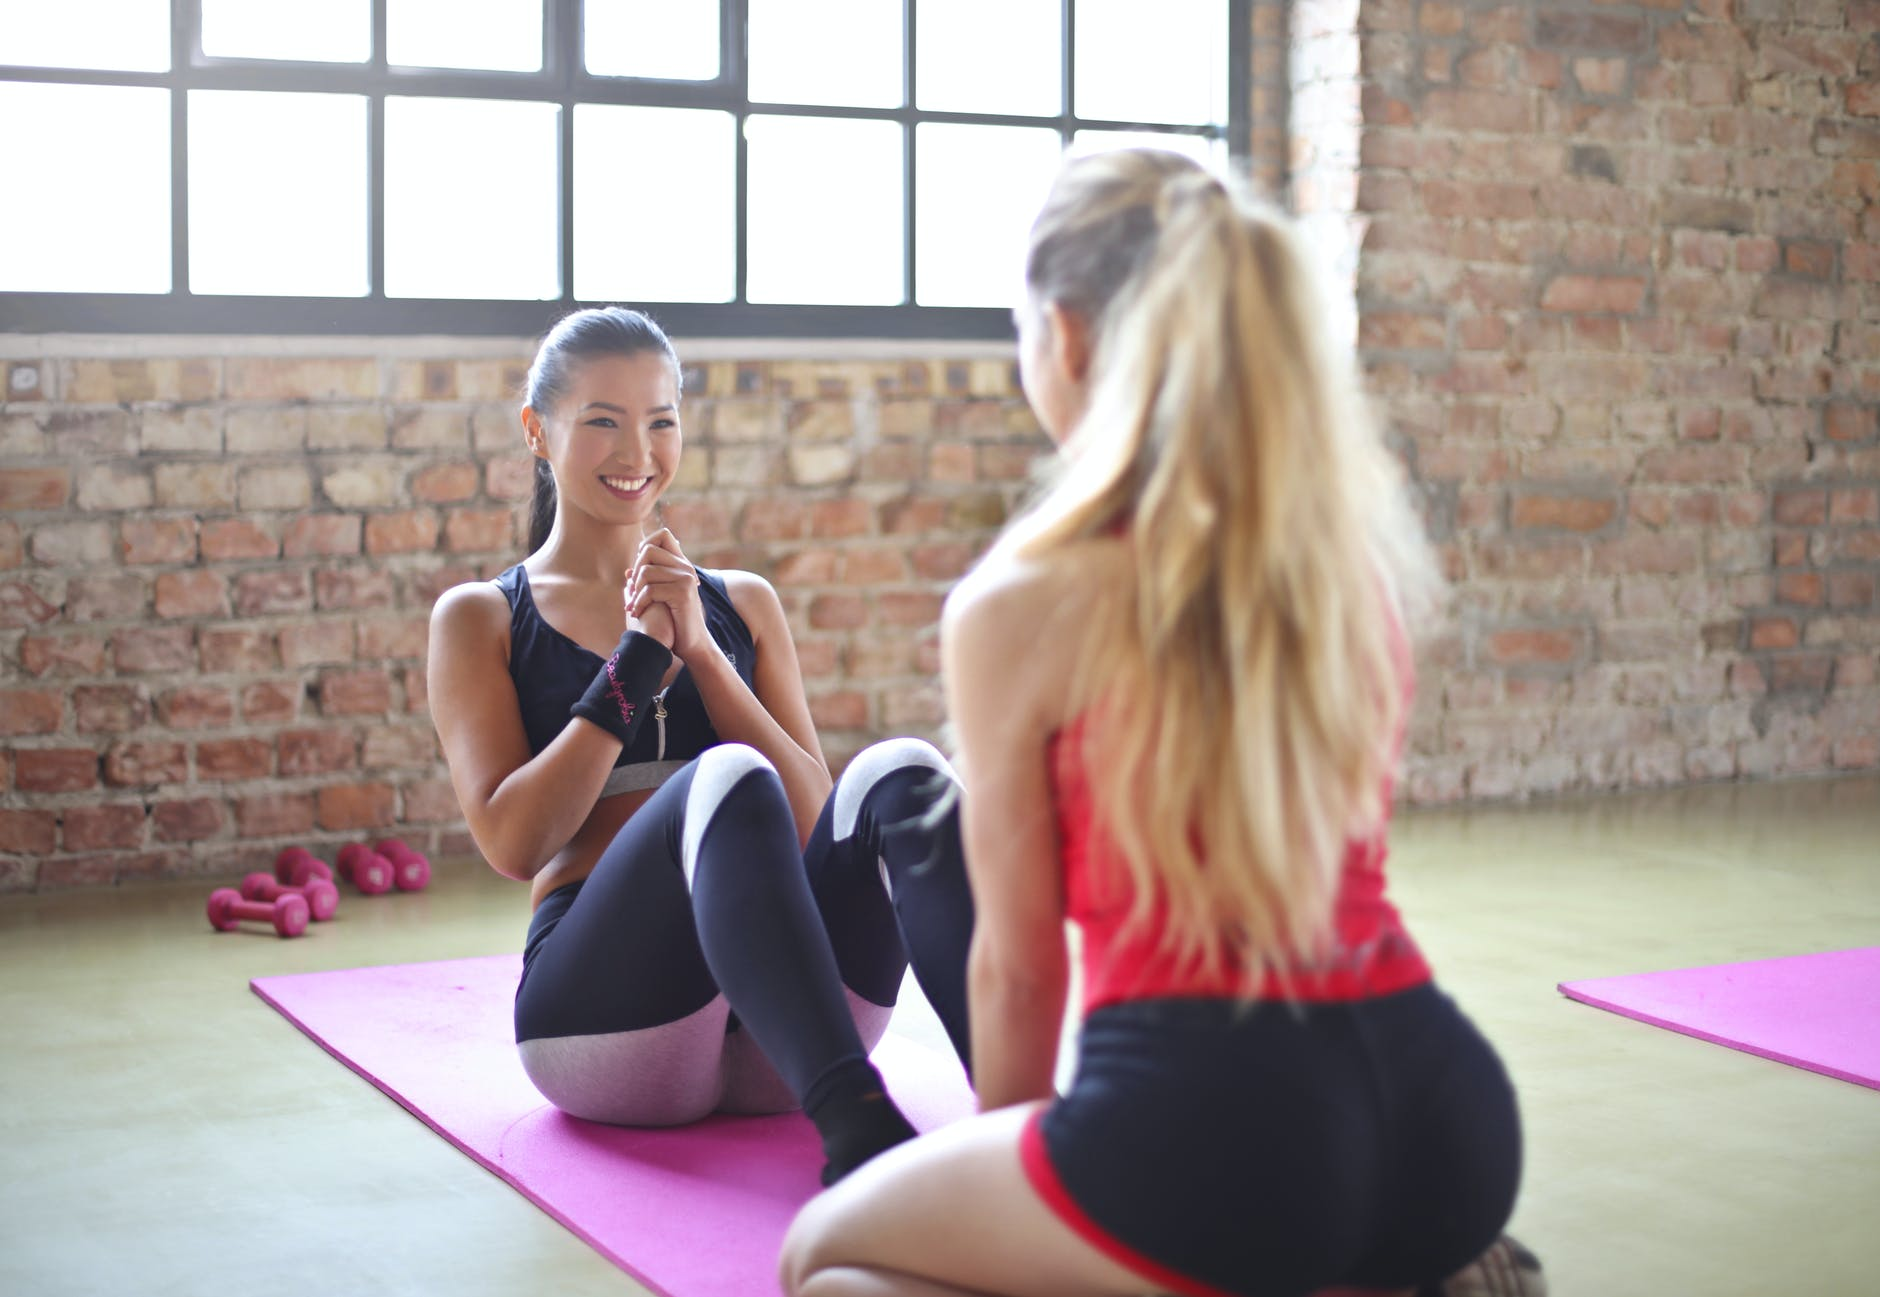 5 Best Moves Instructed In Pilates Classes